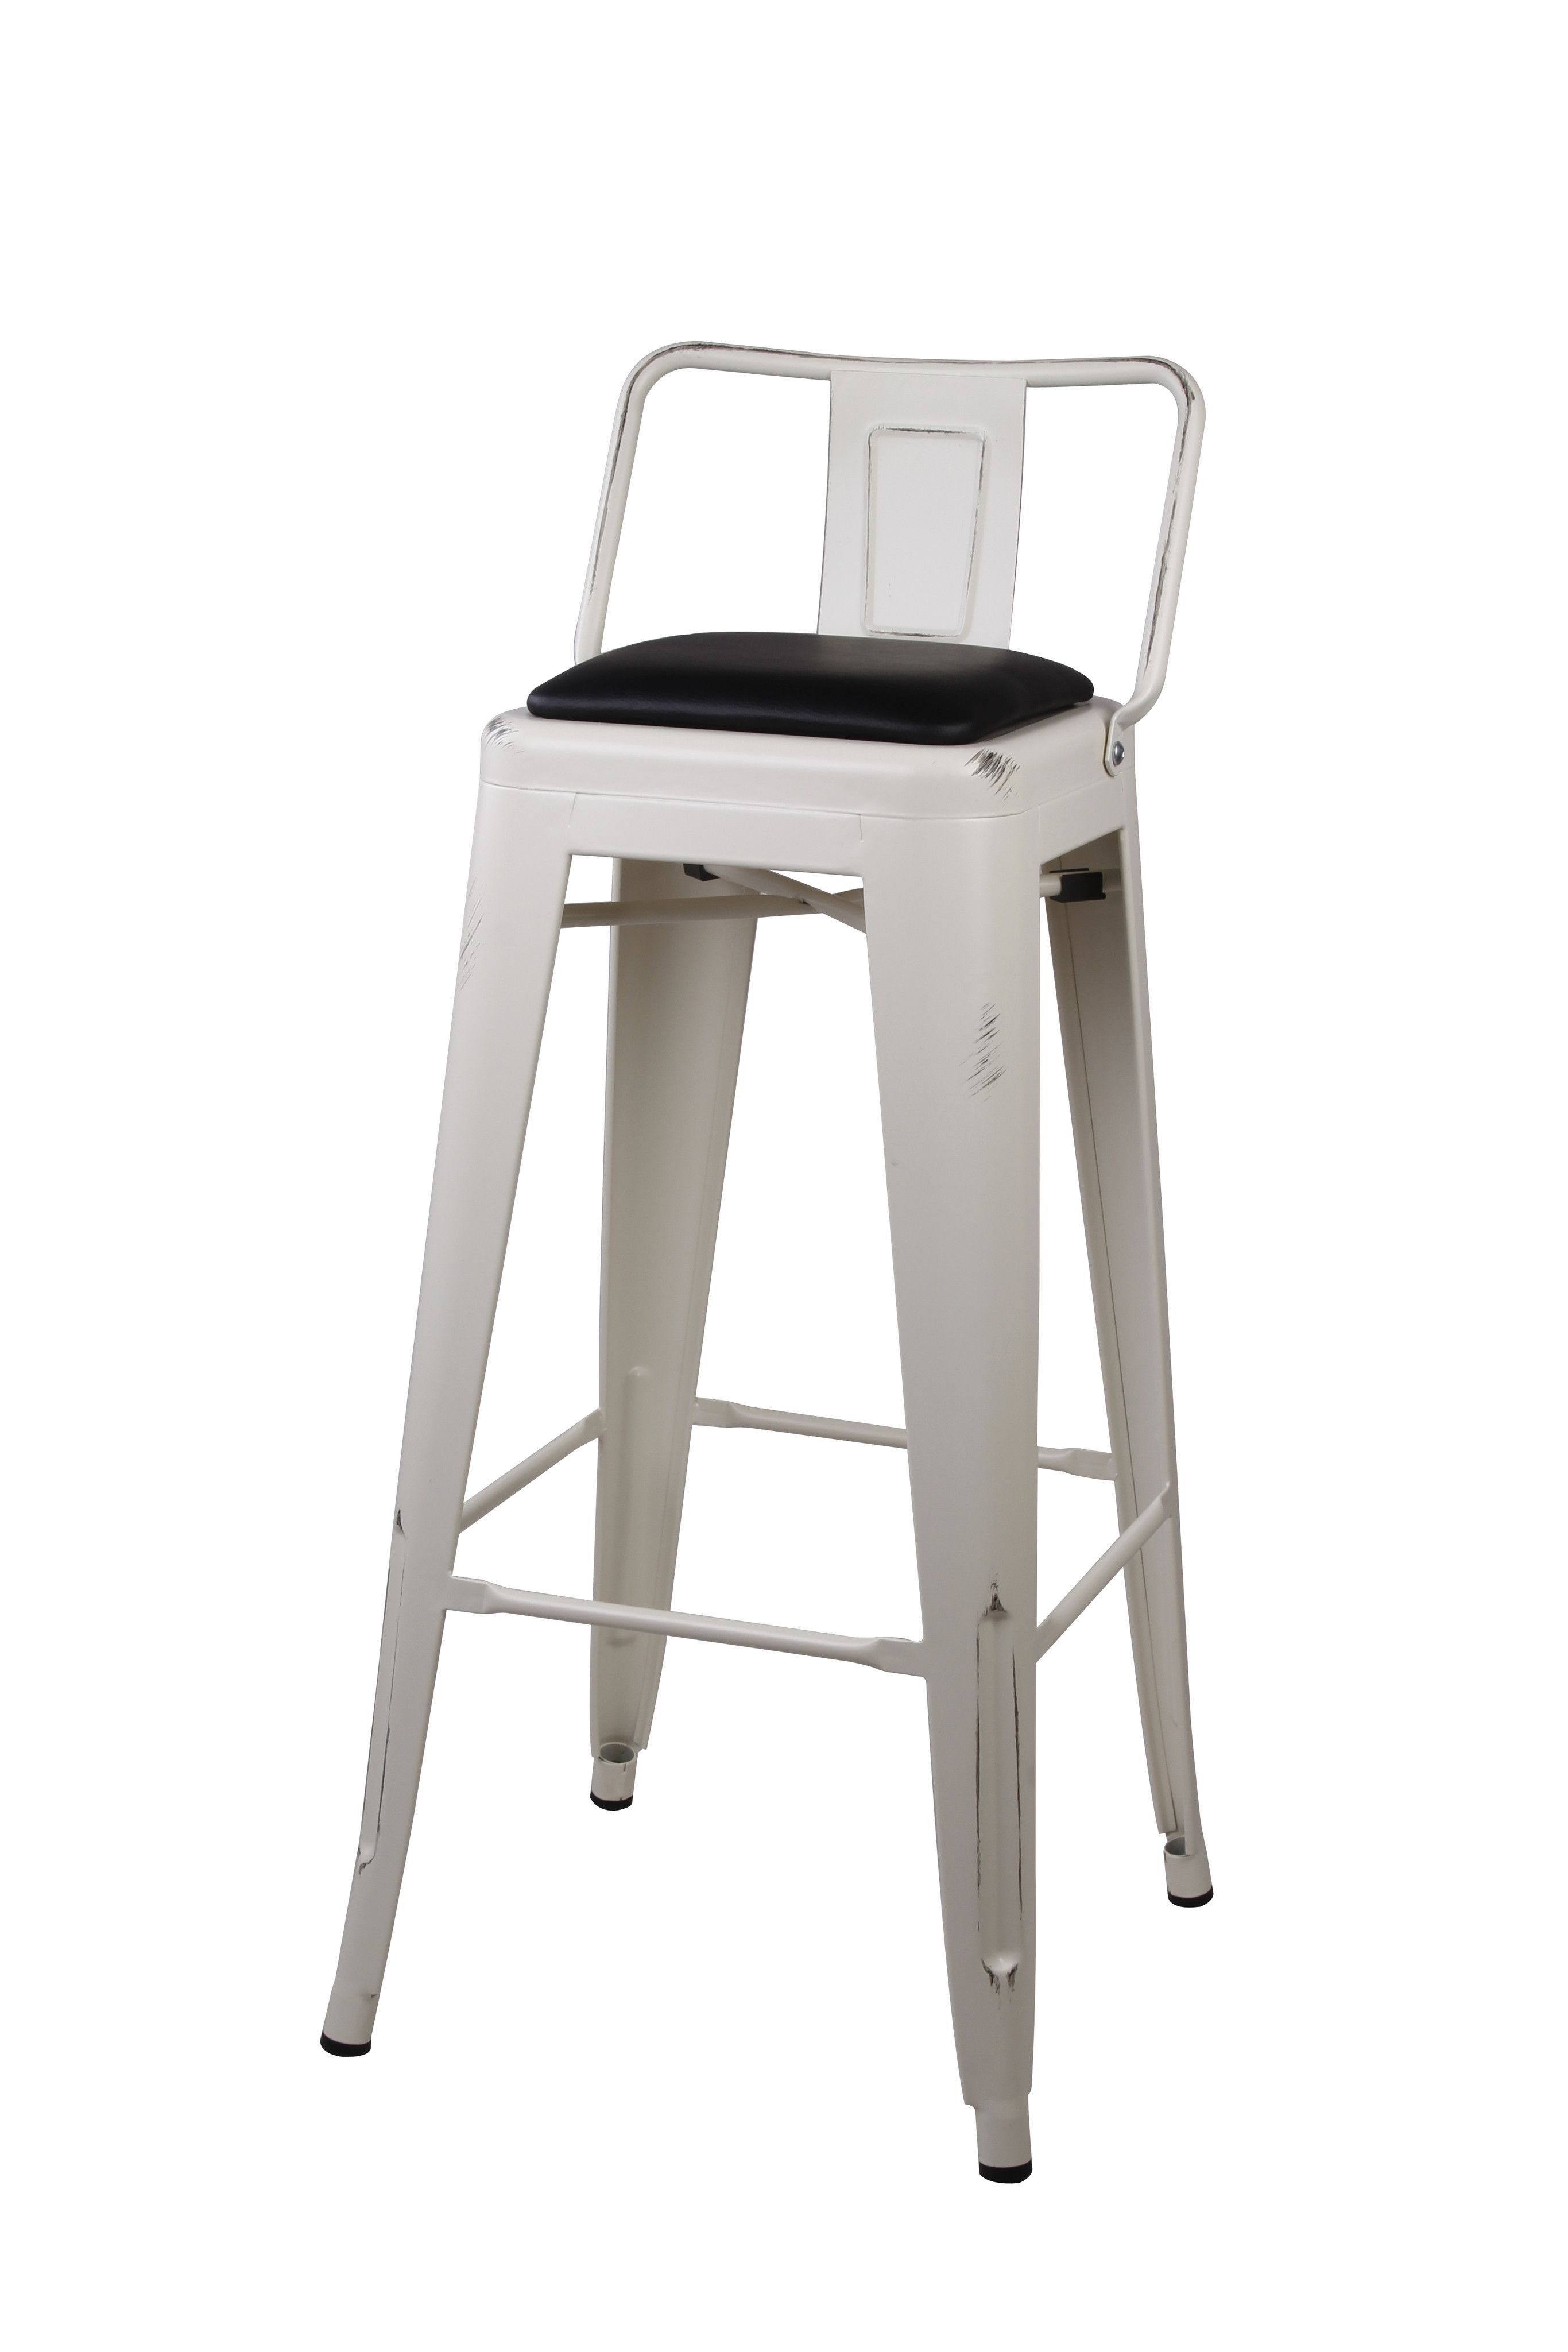 30 metal bar stools with back swivel gia low back metal barstool with leather cushion 30 30 products pinterest bar stools counter and bar stools